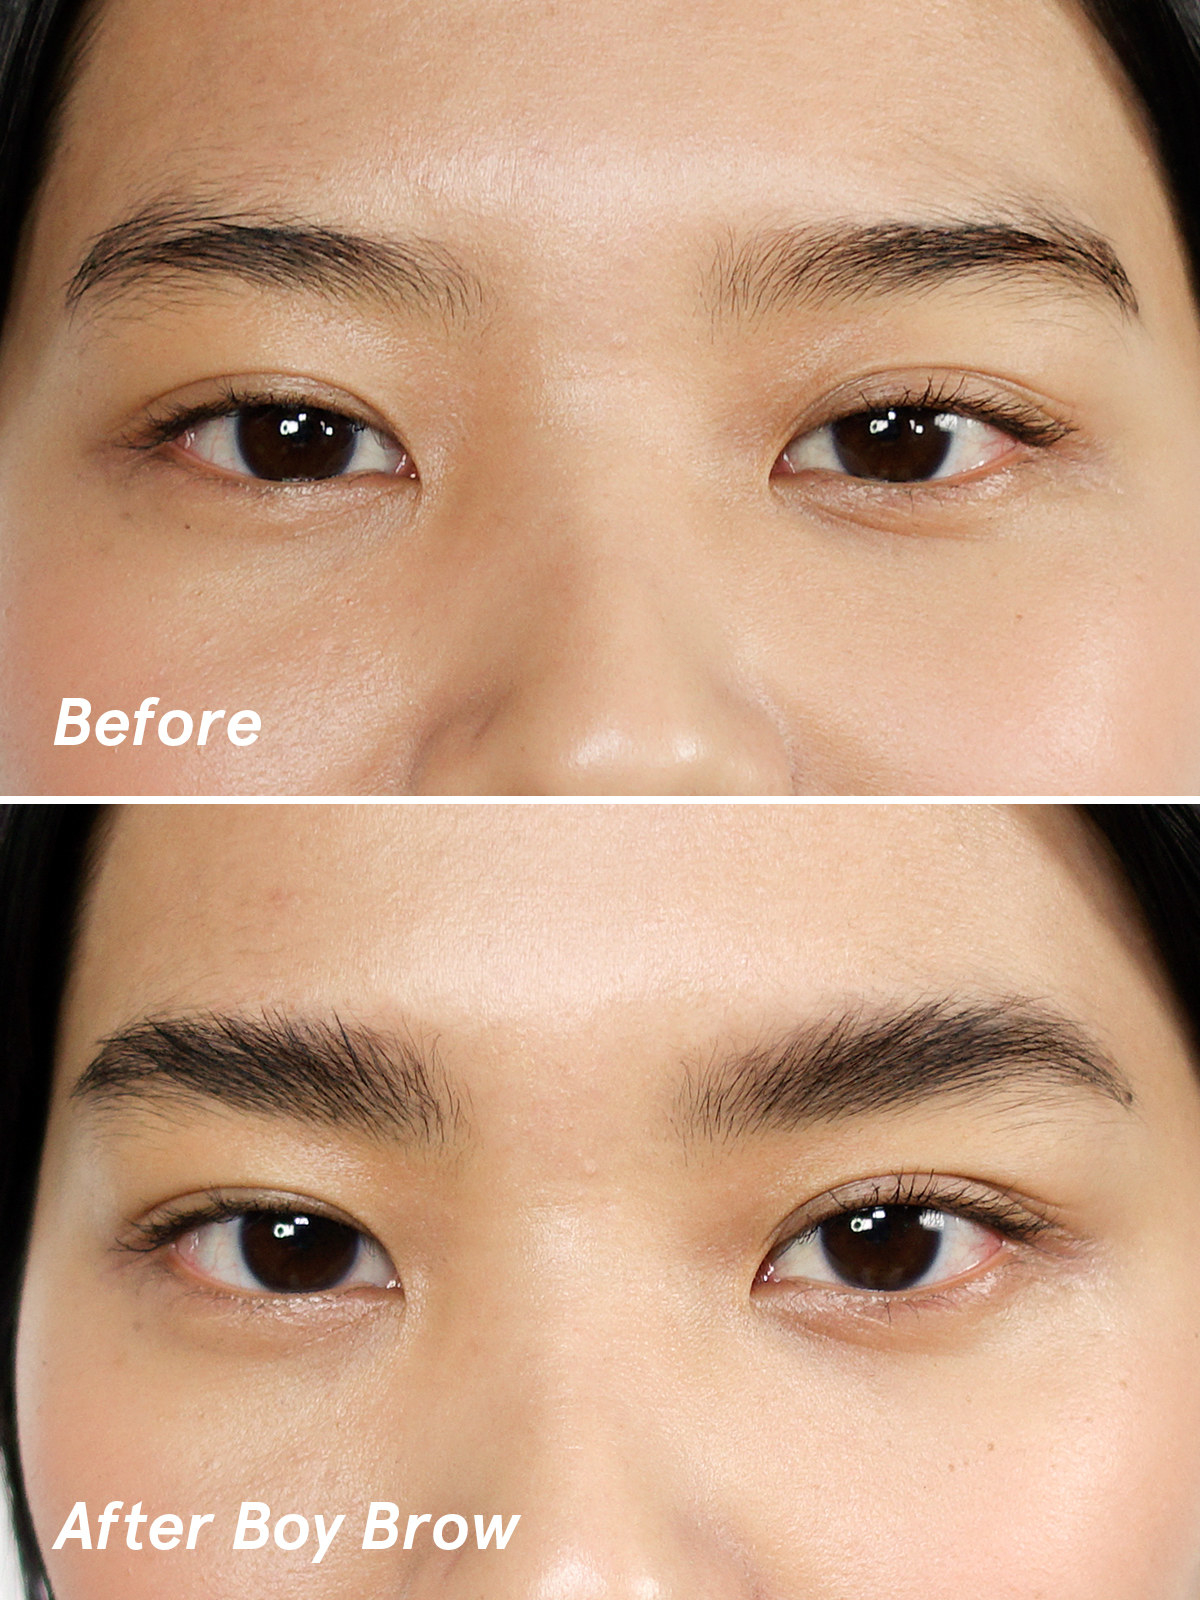 A model's thin eyebrows looking thicker after using the product